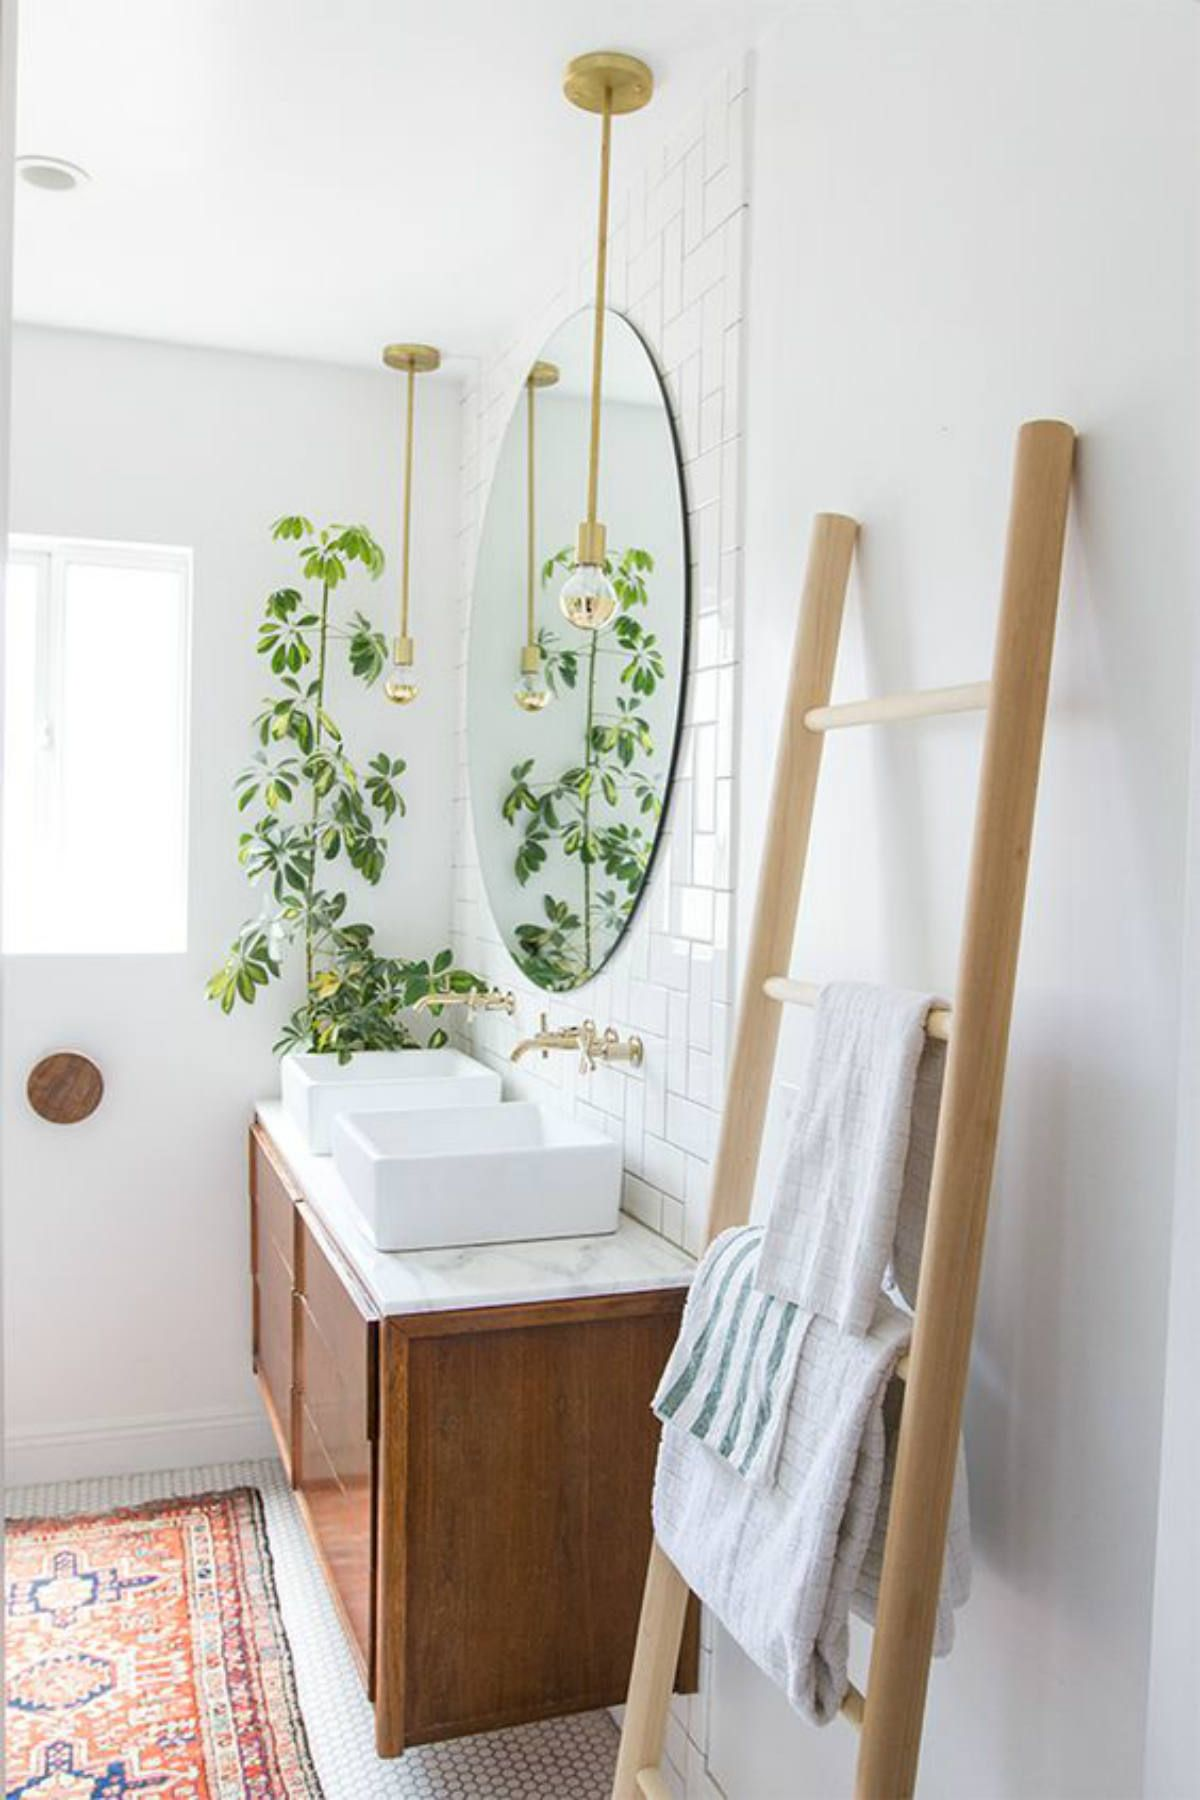 8 Cheap Ways to Make Even the Tiniest Bathroom Feel Like a Spa & 8 Cheap Ways to Make Your Tiny Bathroom Feel Like a Spa | bathroom ...